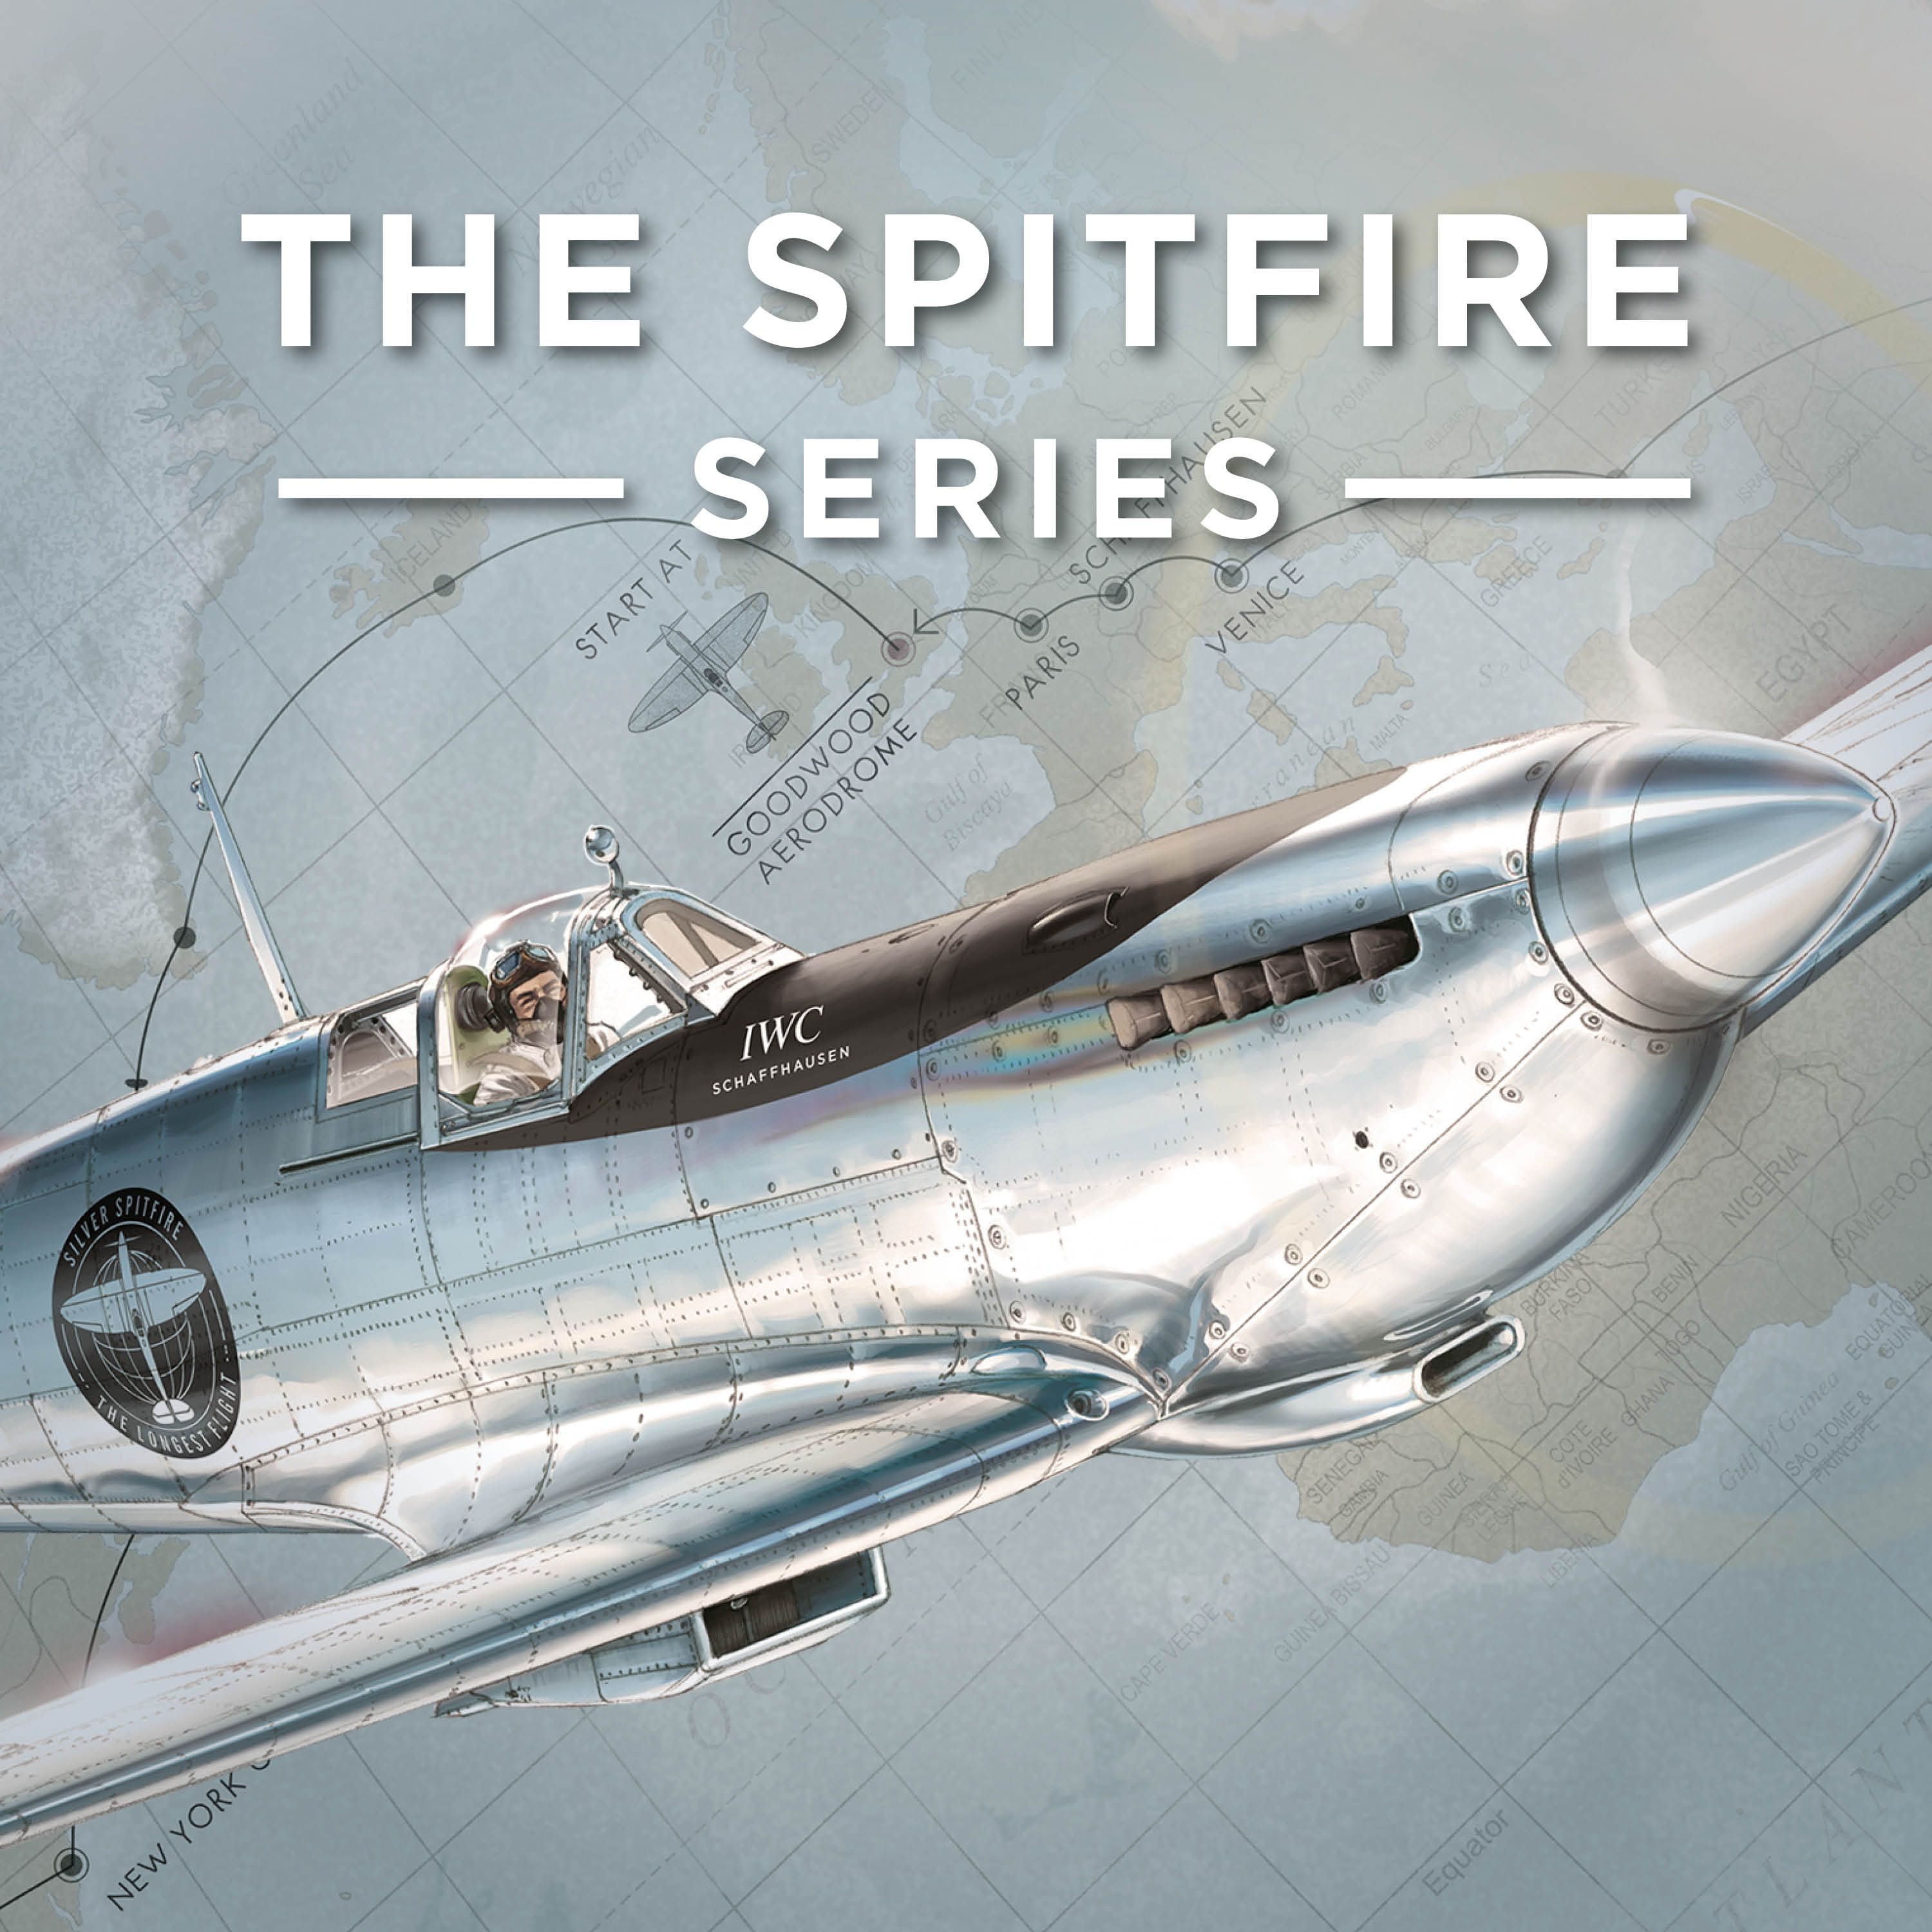 Sounds of the Spitfire, with Gerry Jones and Tim Granshaw